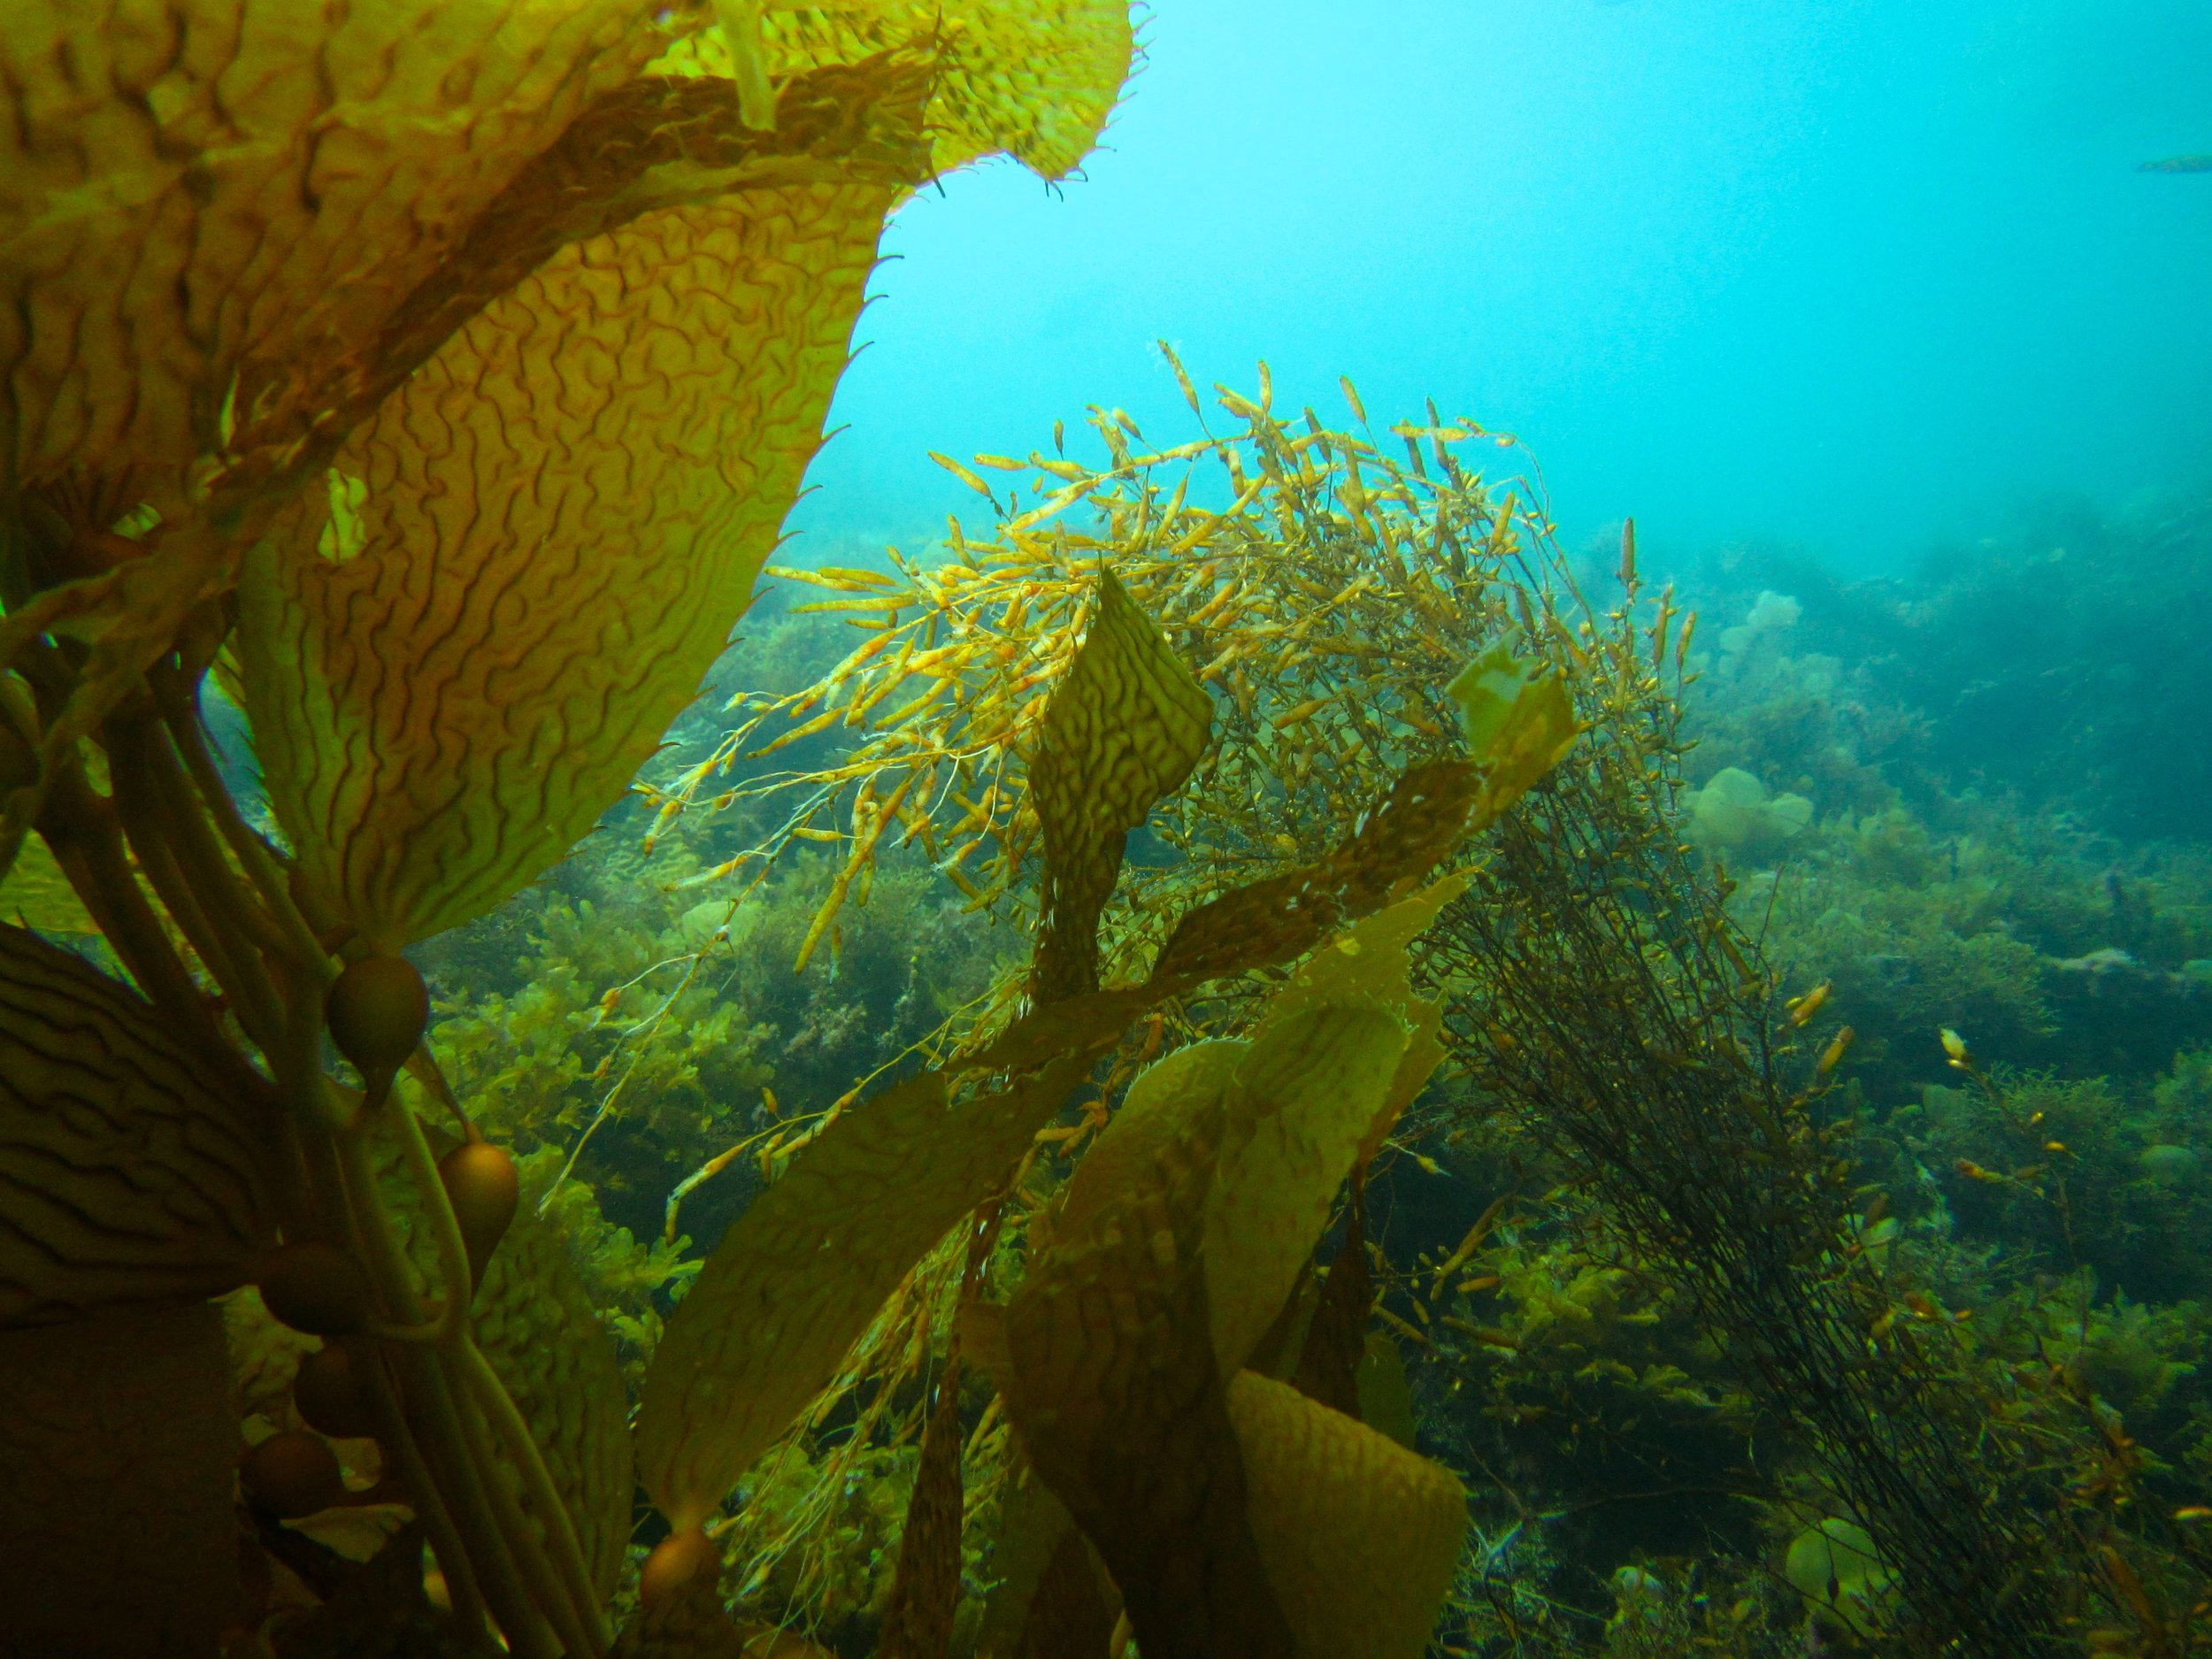 Kelp and  Sargassum  growing in close proximity to each other compete for space, nutrients, and light. Photo credit: Jason Baer